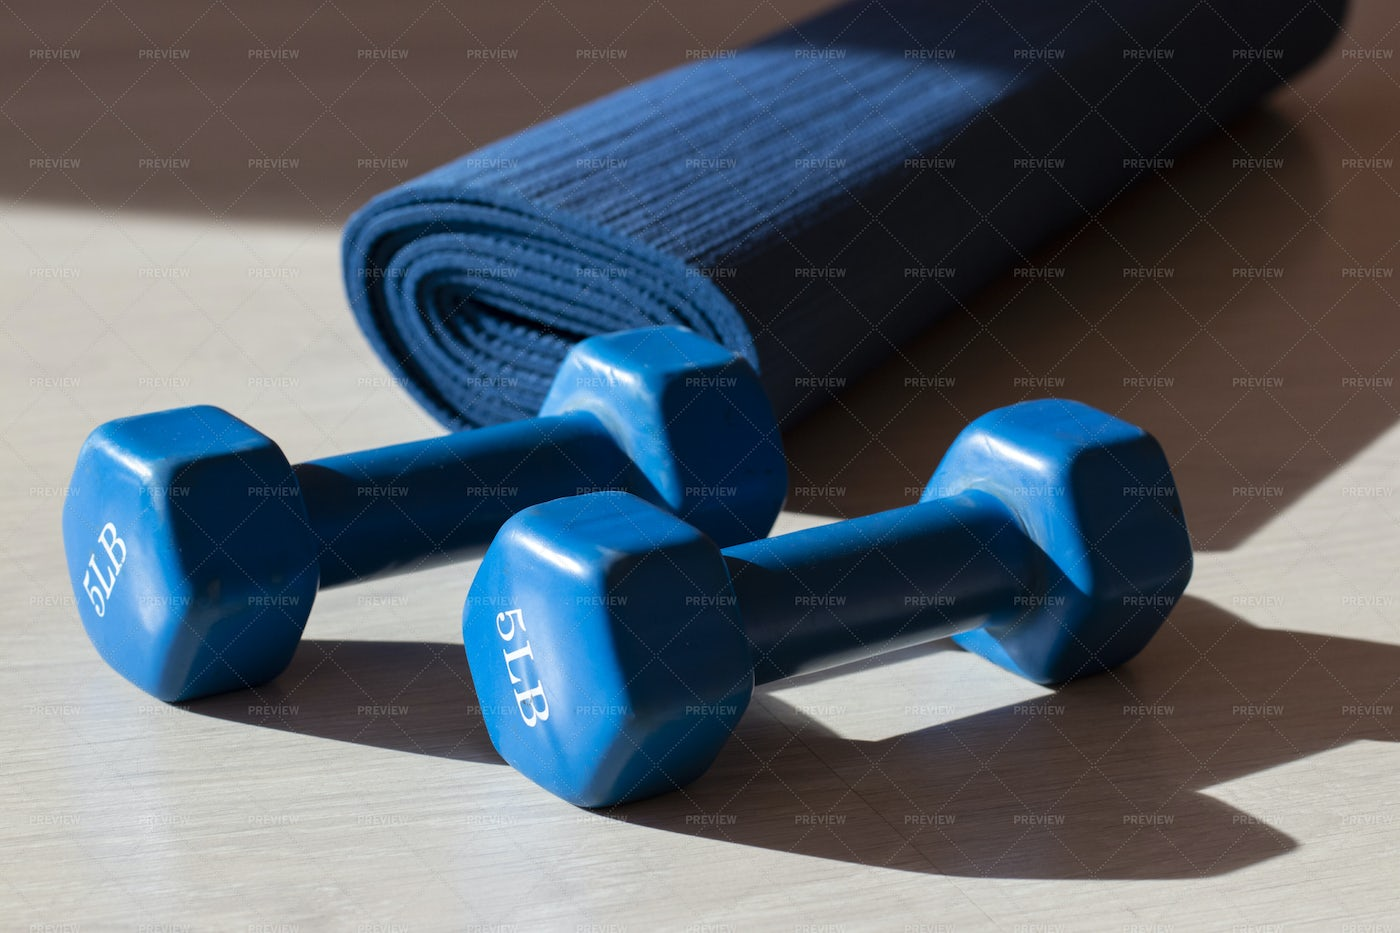 Two Blue Dumbbells And A Yoga Mat: Stock Photos